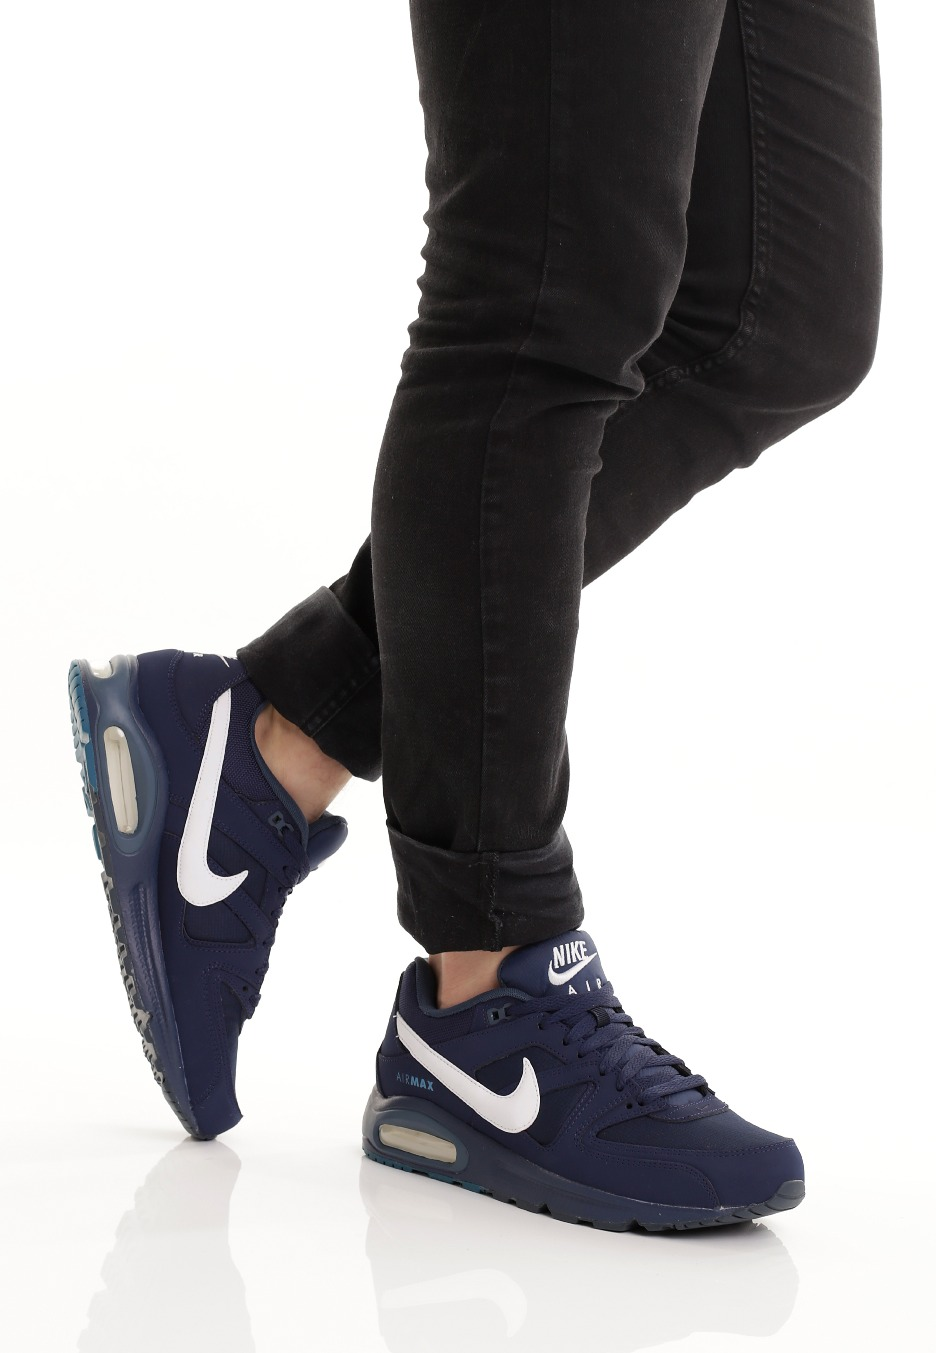 abea412a6d13 ... shopping nike air max command midnight navy white squadron blue shoes  72faf 9b309